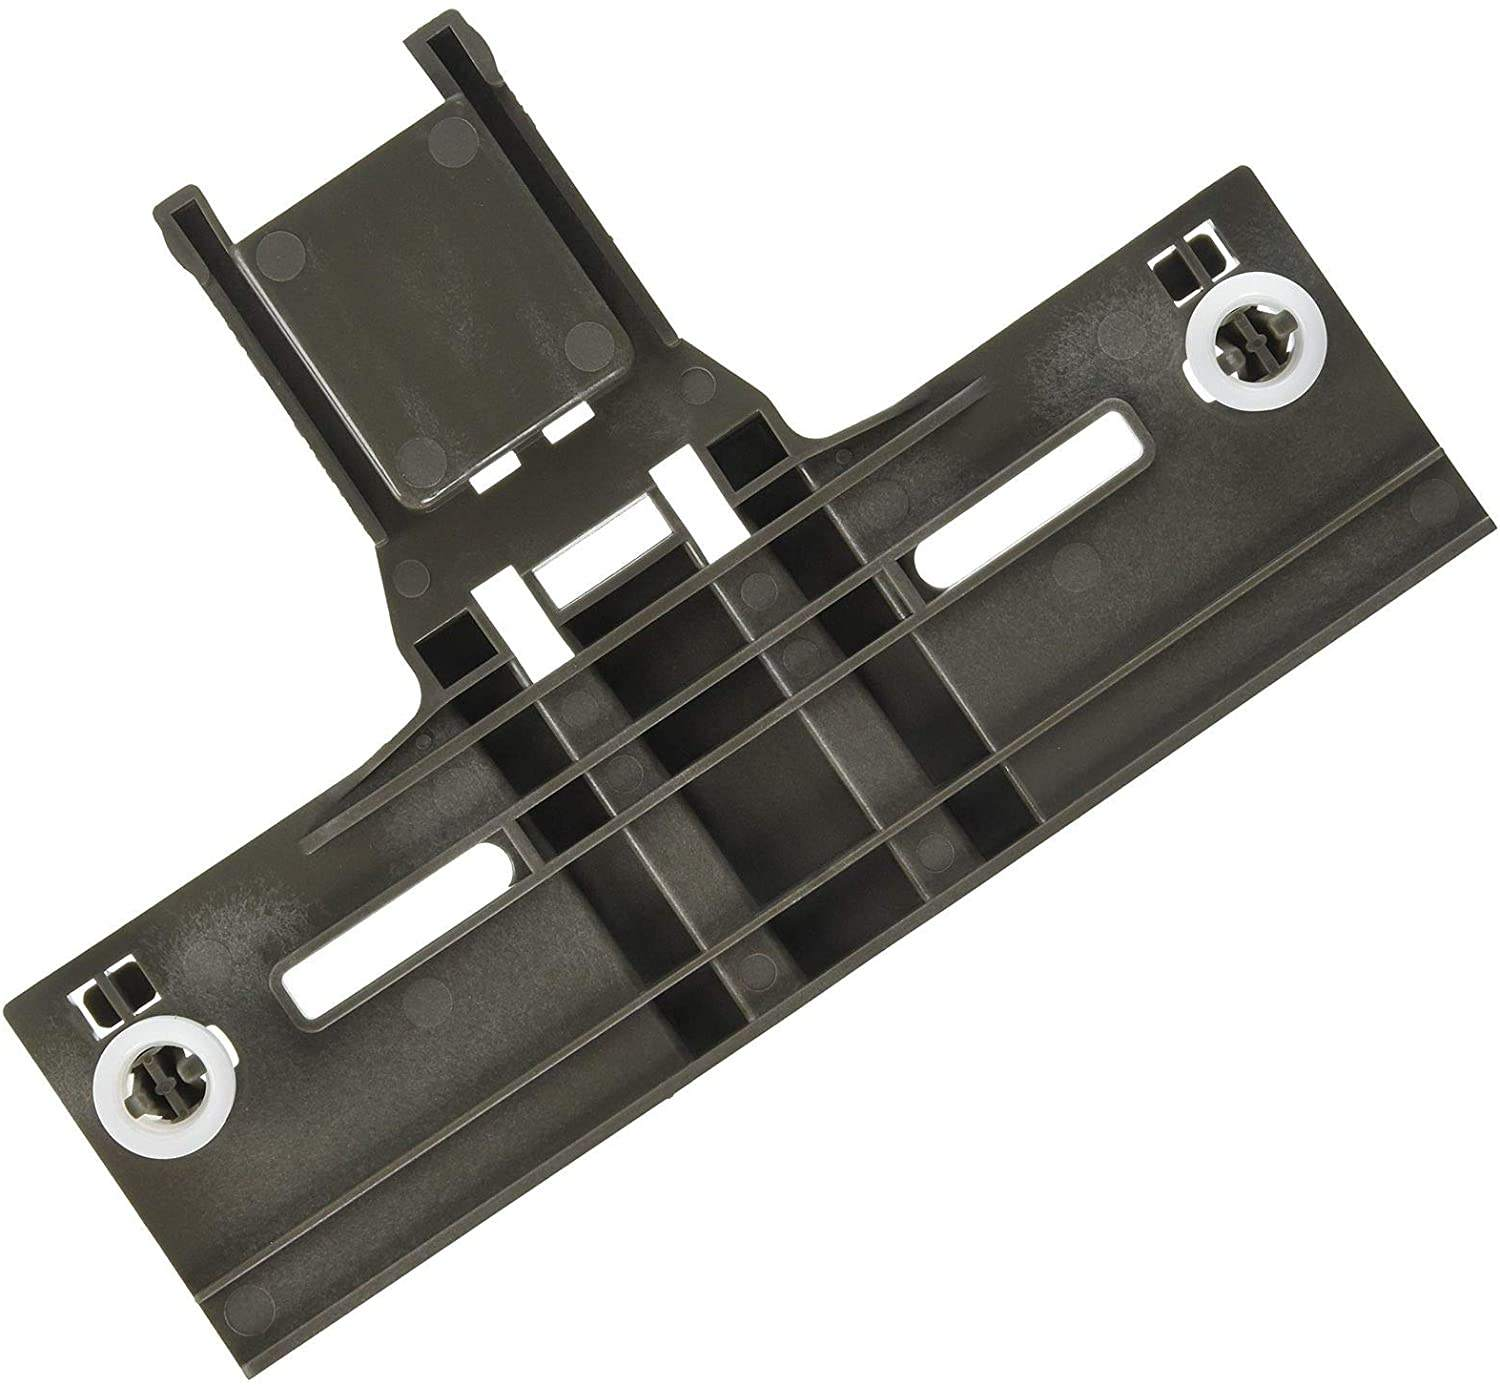 Dishwasher Parts Replacement W10350376 W10253546 Dishwasher Rack Adjuster